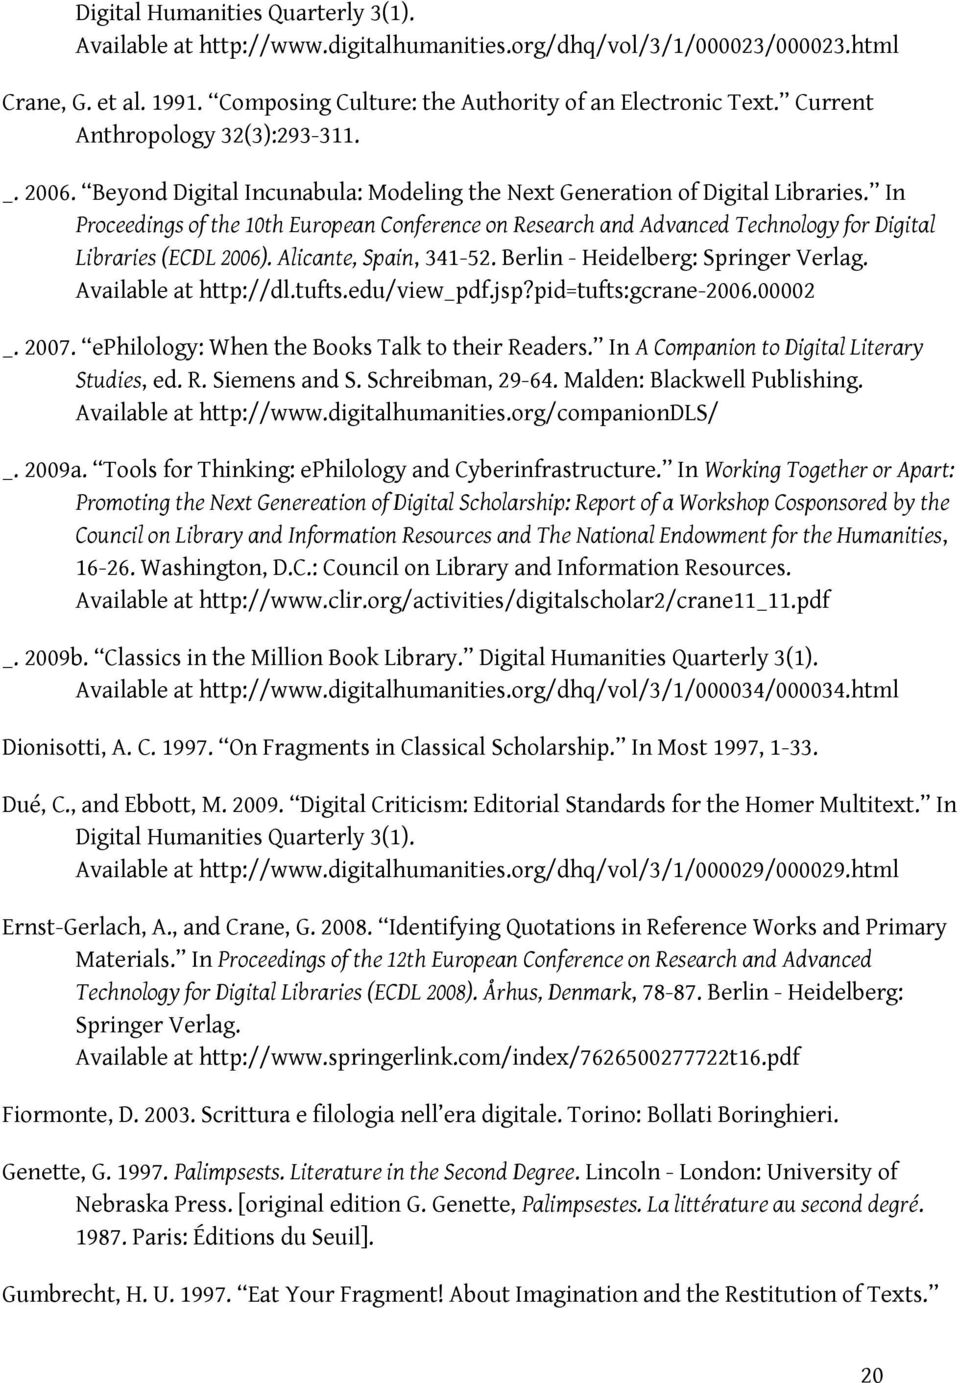 In Proceedings of the 10th European Conference on Research and Advanced Technology for Digital Libraries (ECDL 2006). Alicante, Spain, 341-52. Berlin - Heidelberg: Springer Verlag.